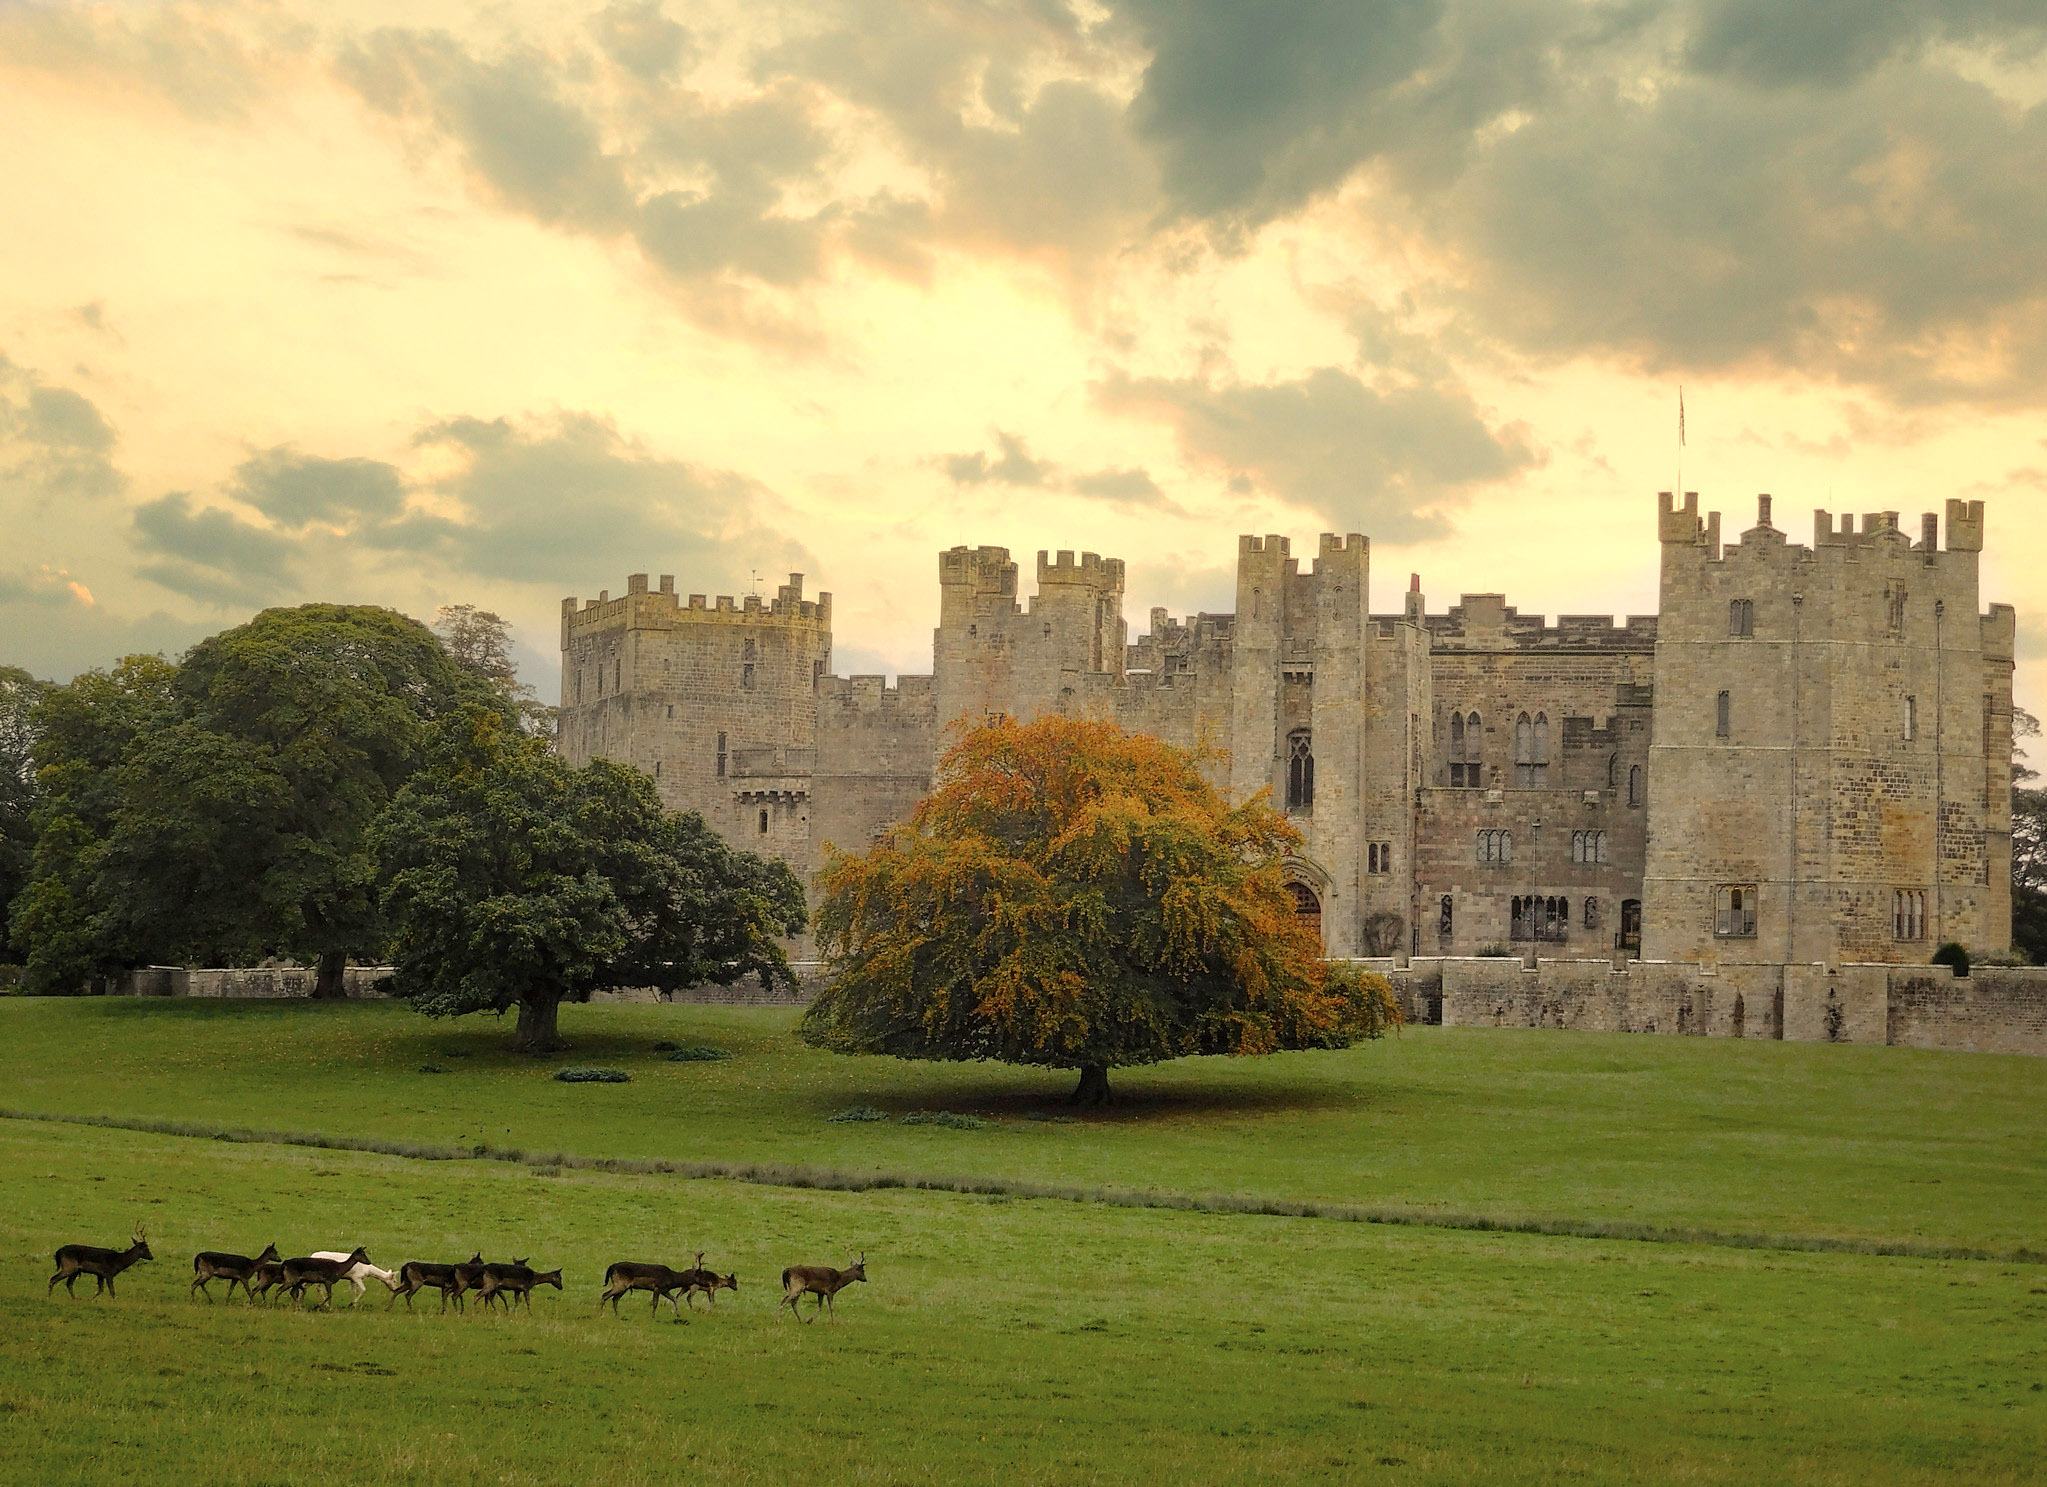 Golden hour at Raby Castle by Jimsumo999.jpg